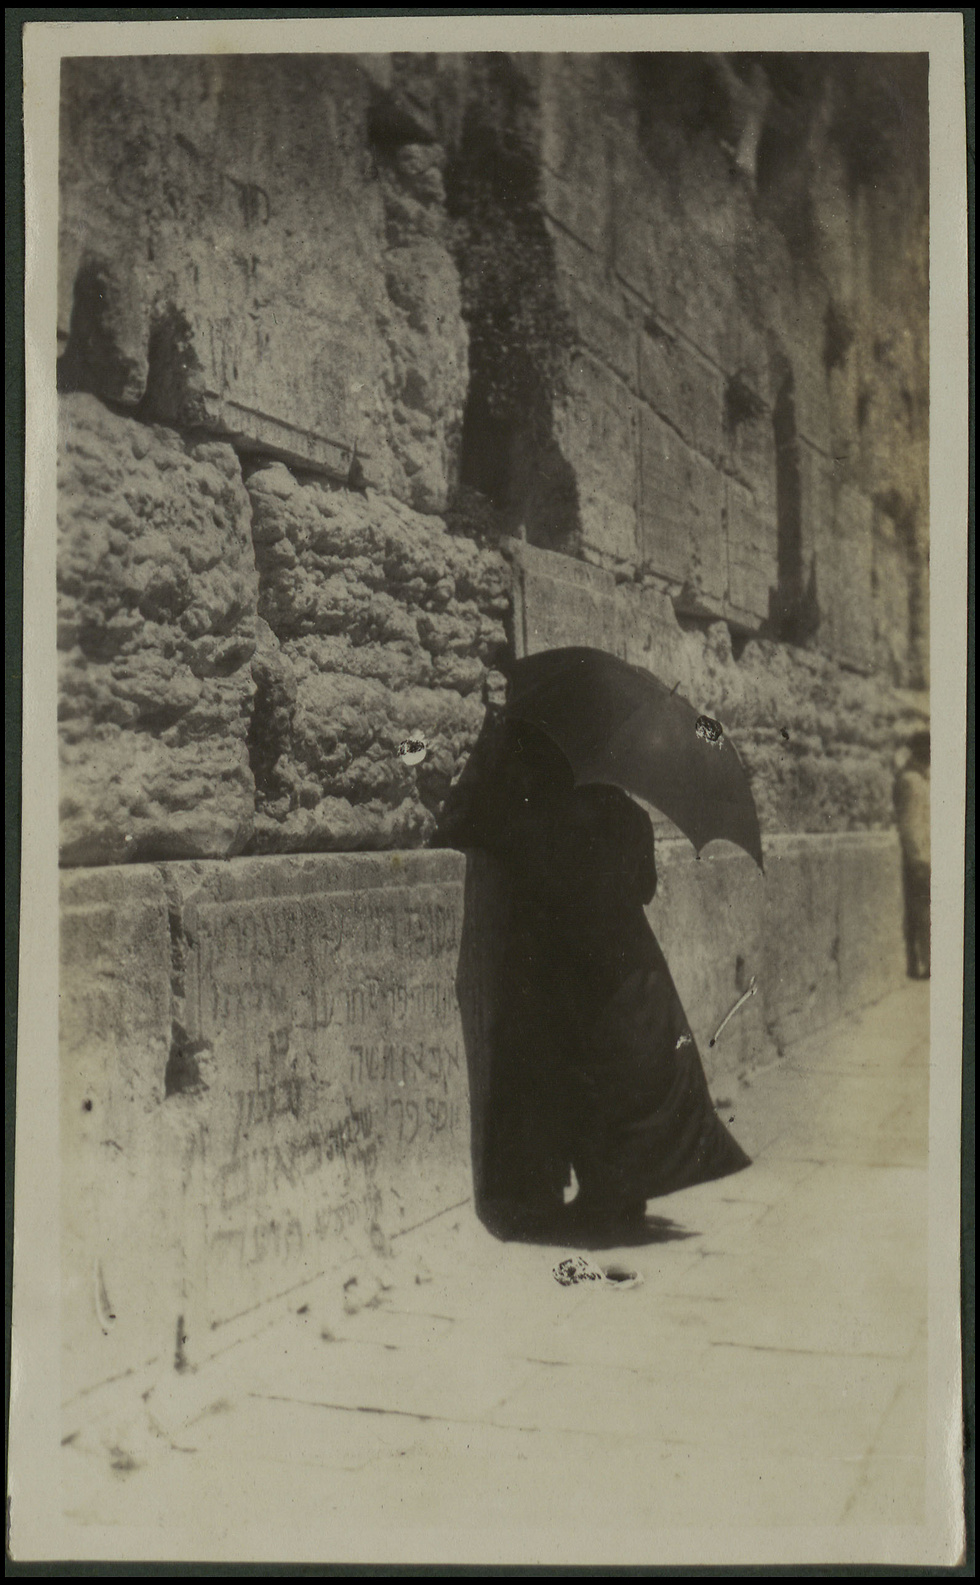 Man praying near Western Wall (Photo: National Library of Israel)